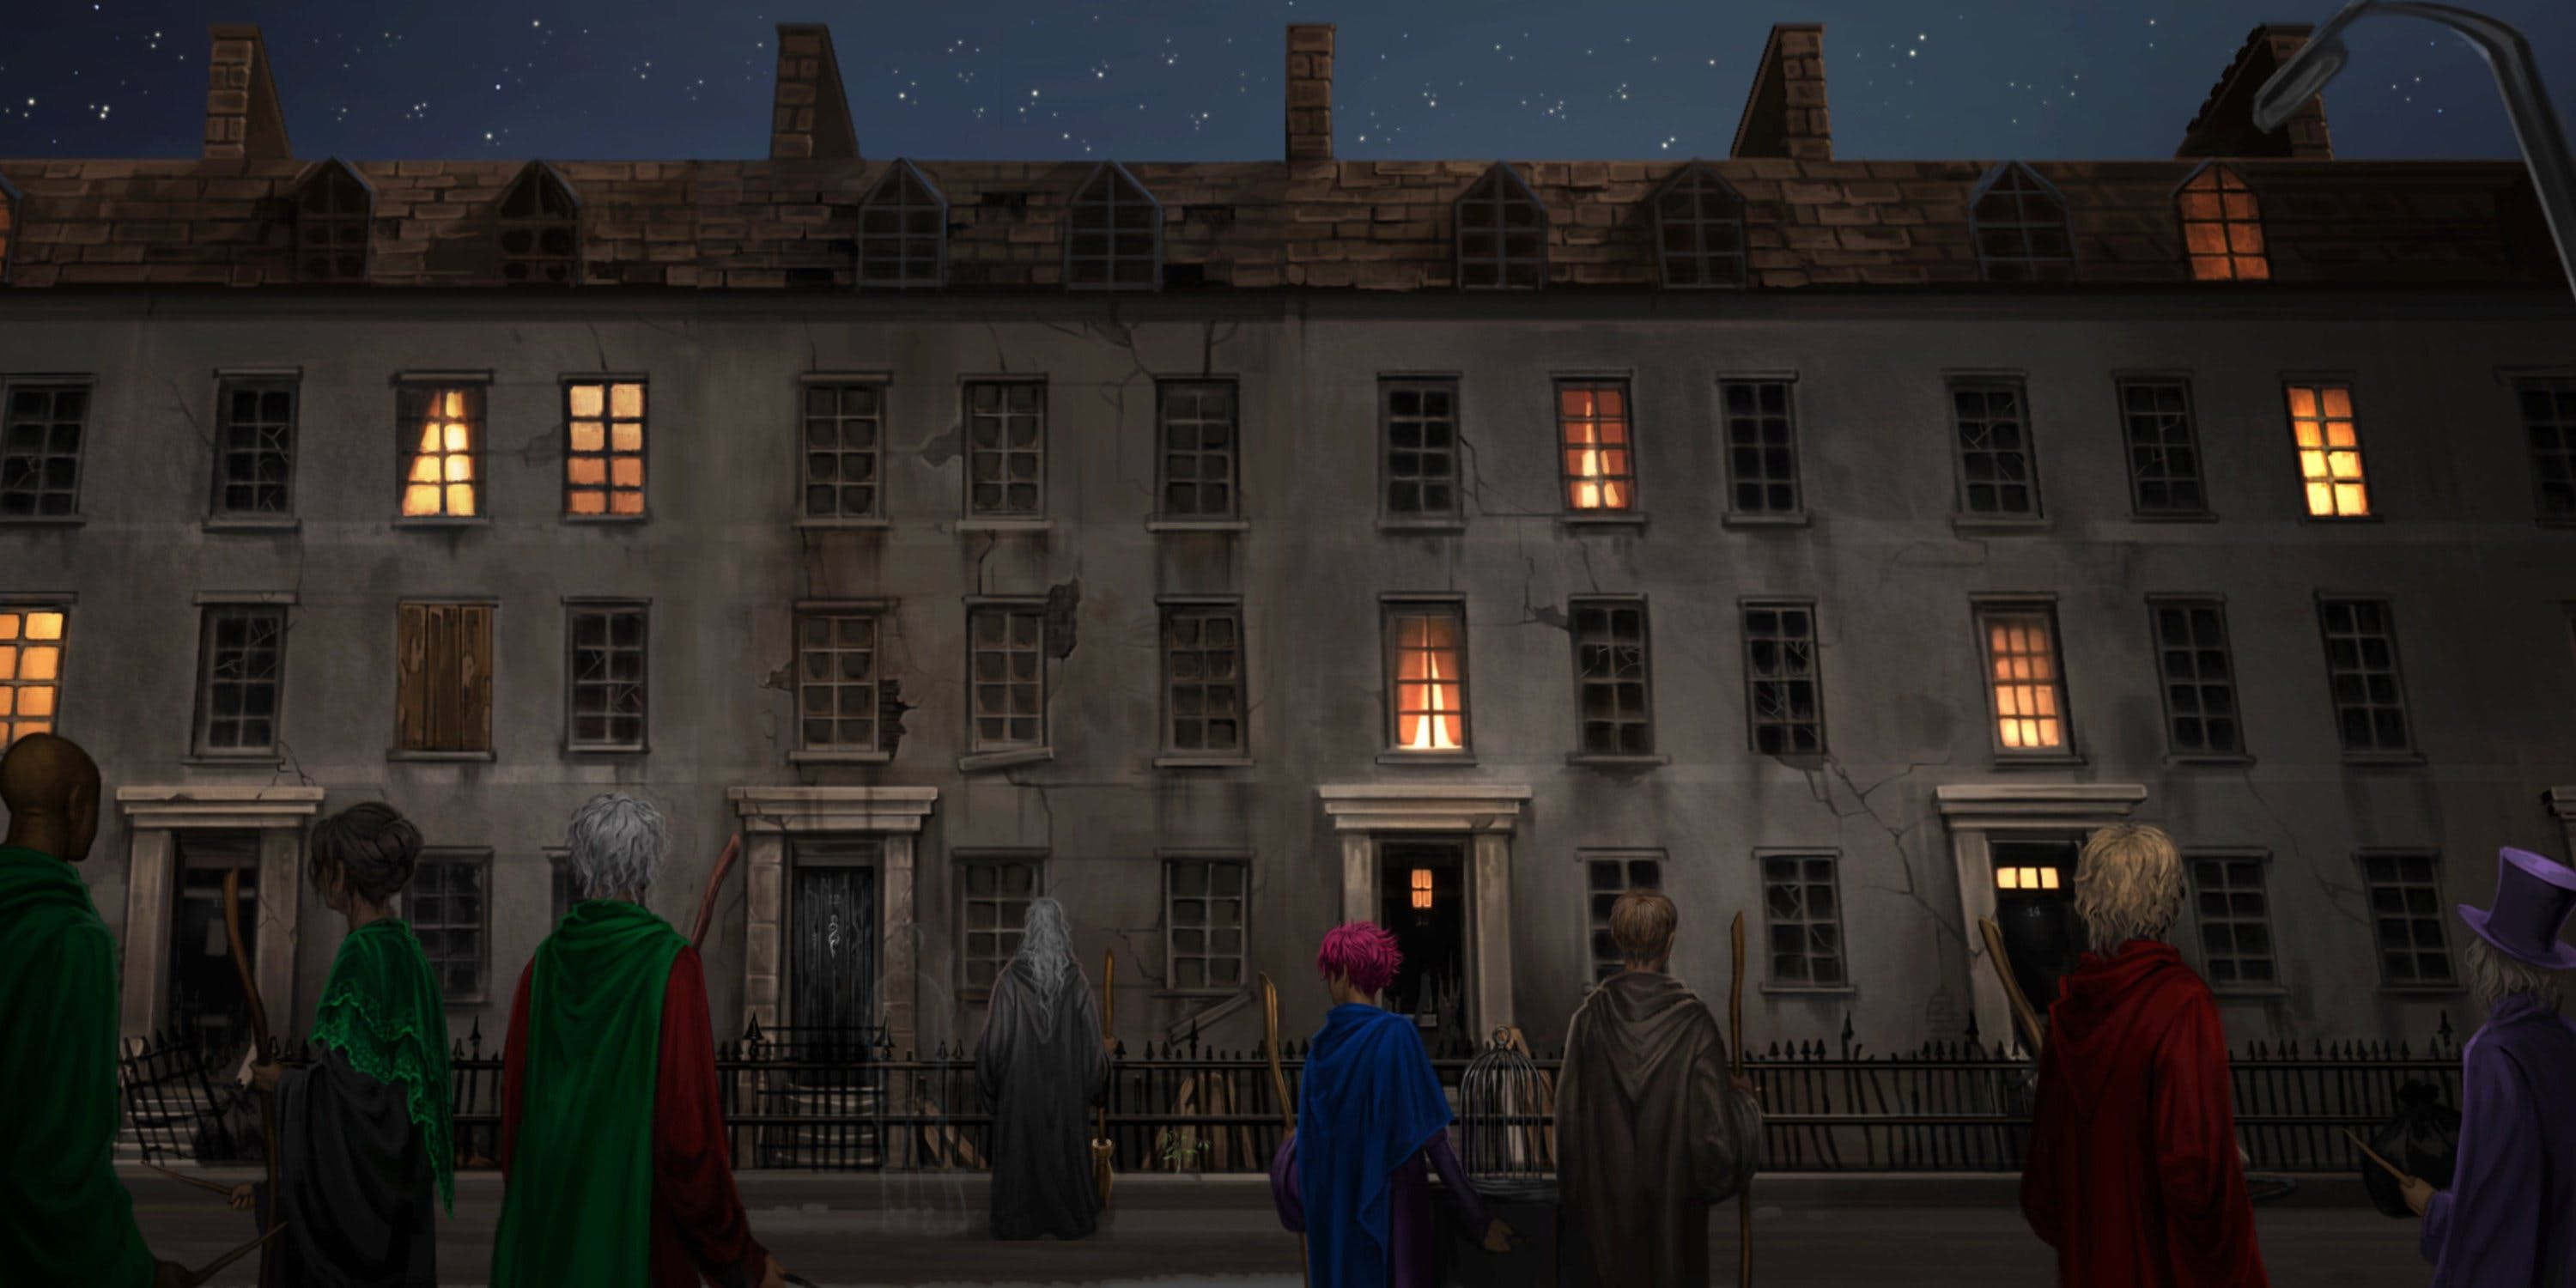 15 things you didnt know about 12 grimmauld place